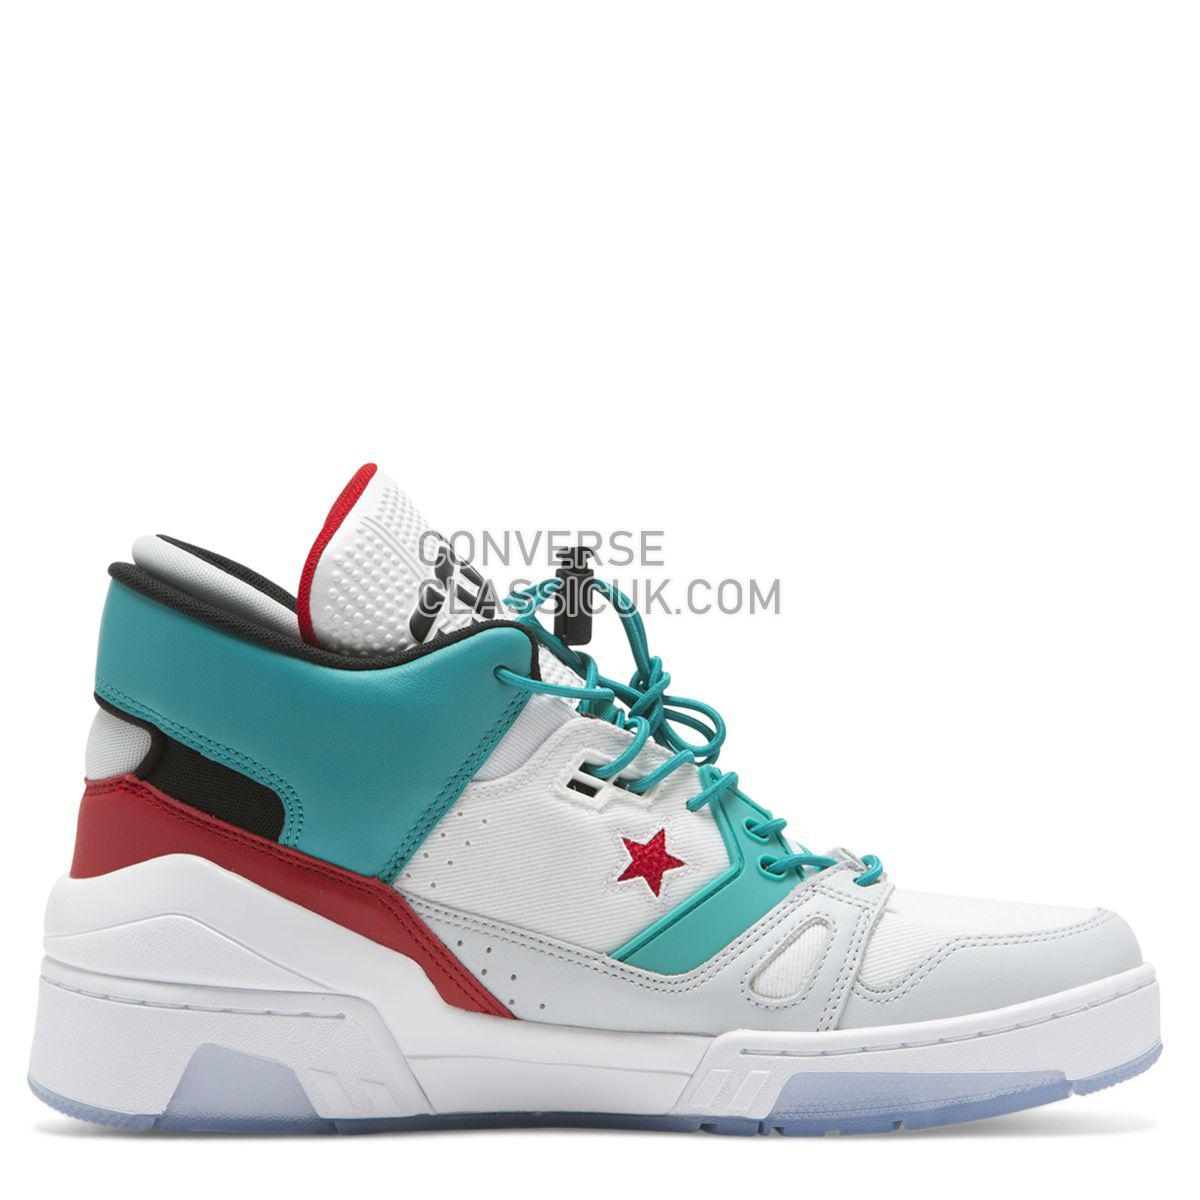 Converse ERX 260 Space Racer Mid White Mens 165077 White/Turbo Green/Enamel Red Shoes